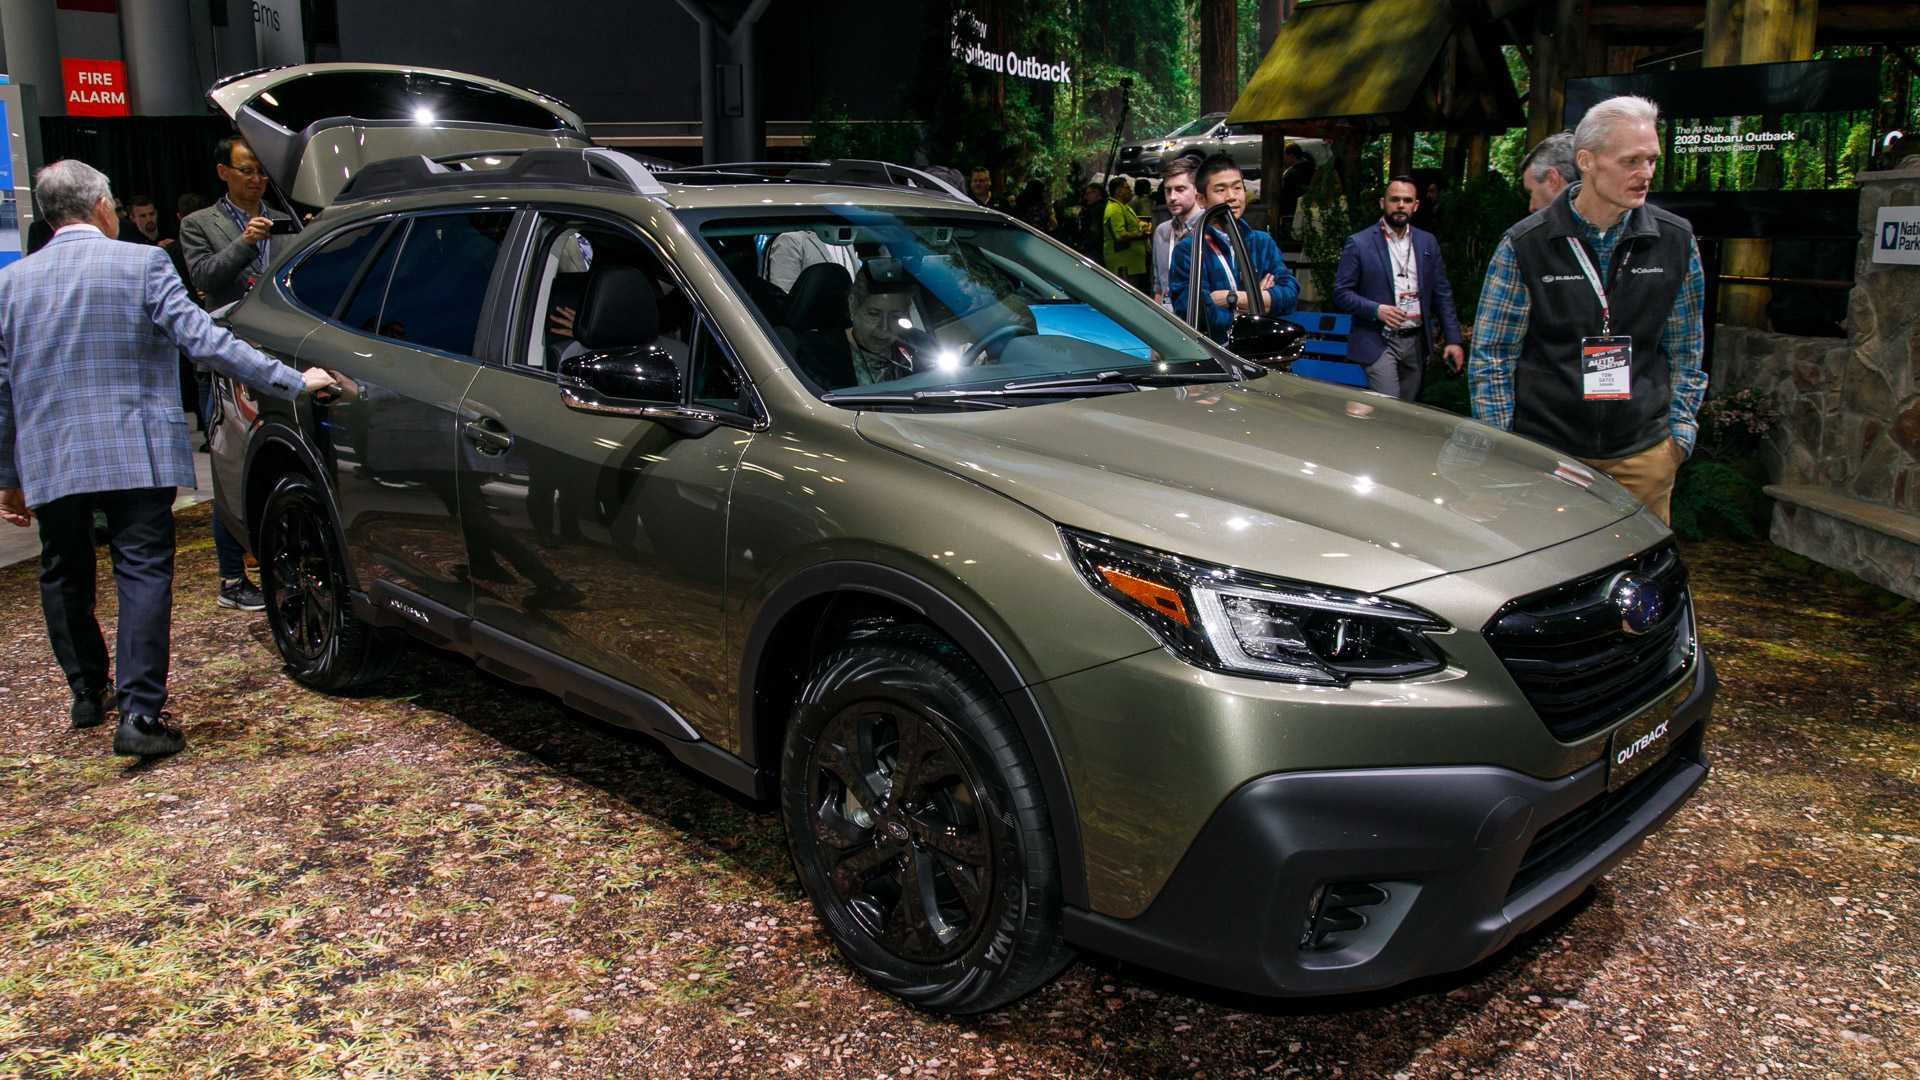 69 Best 2020 Subaru Outback Concept Price And Review